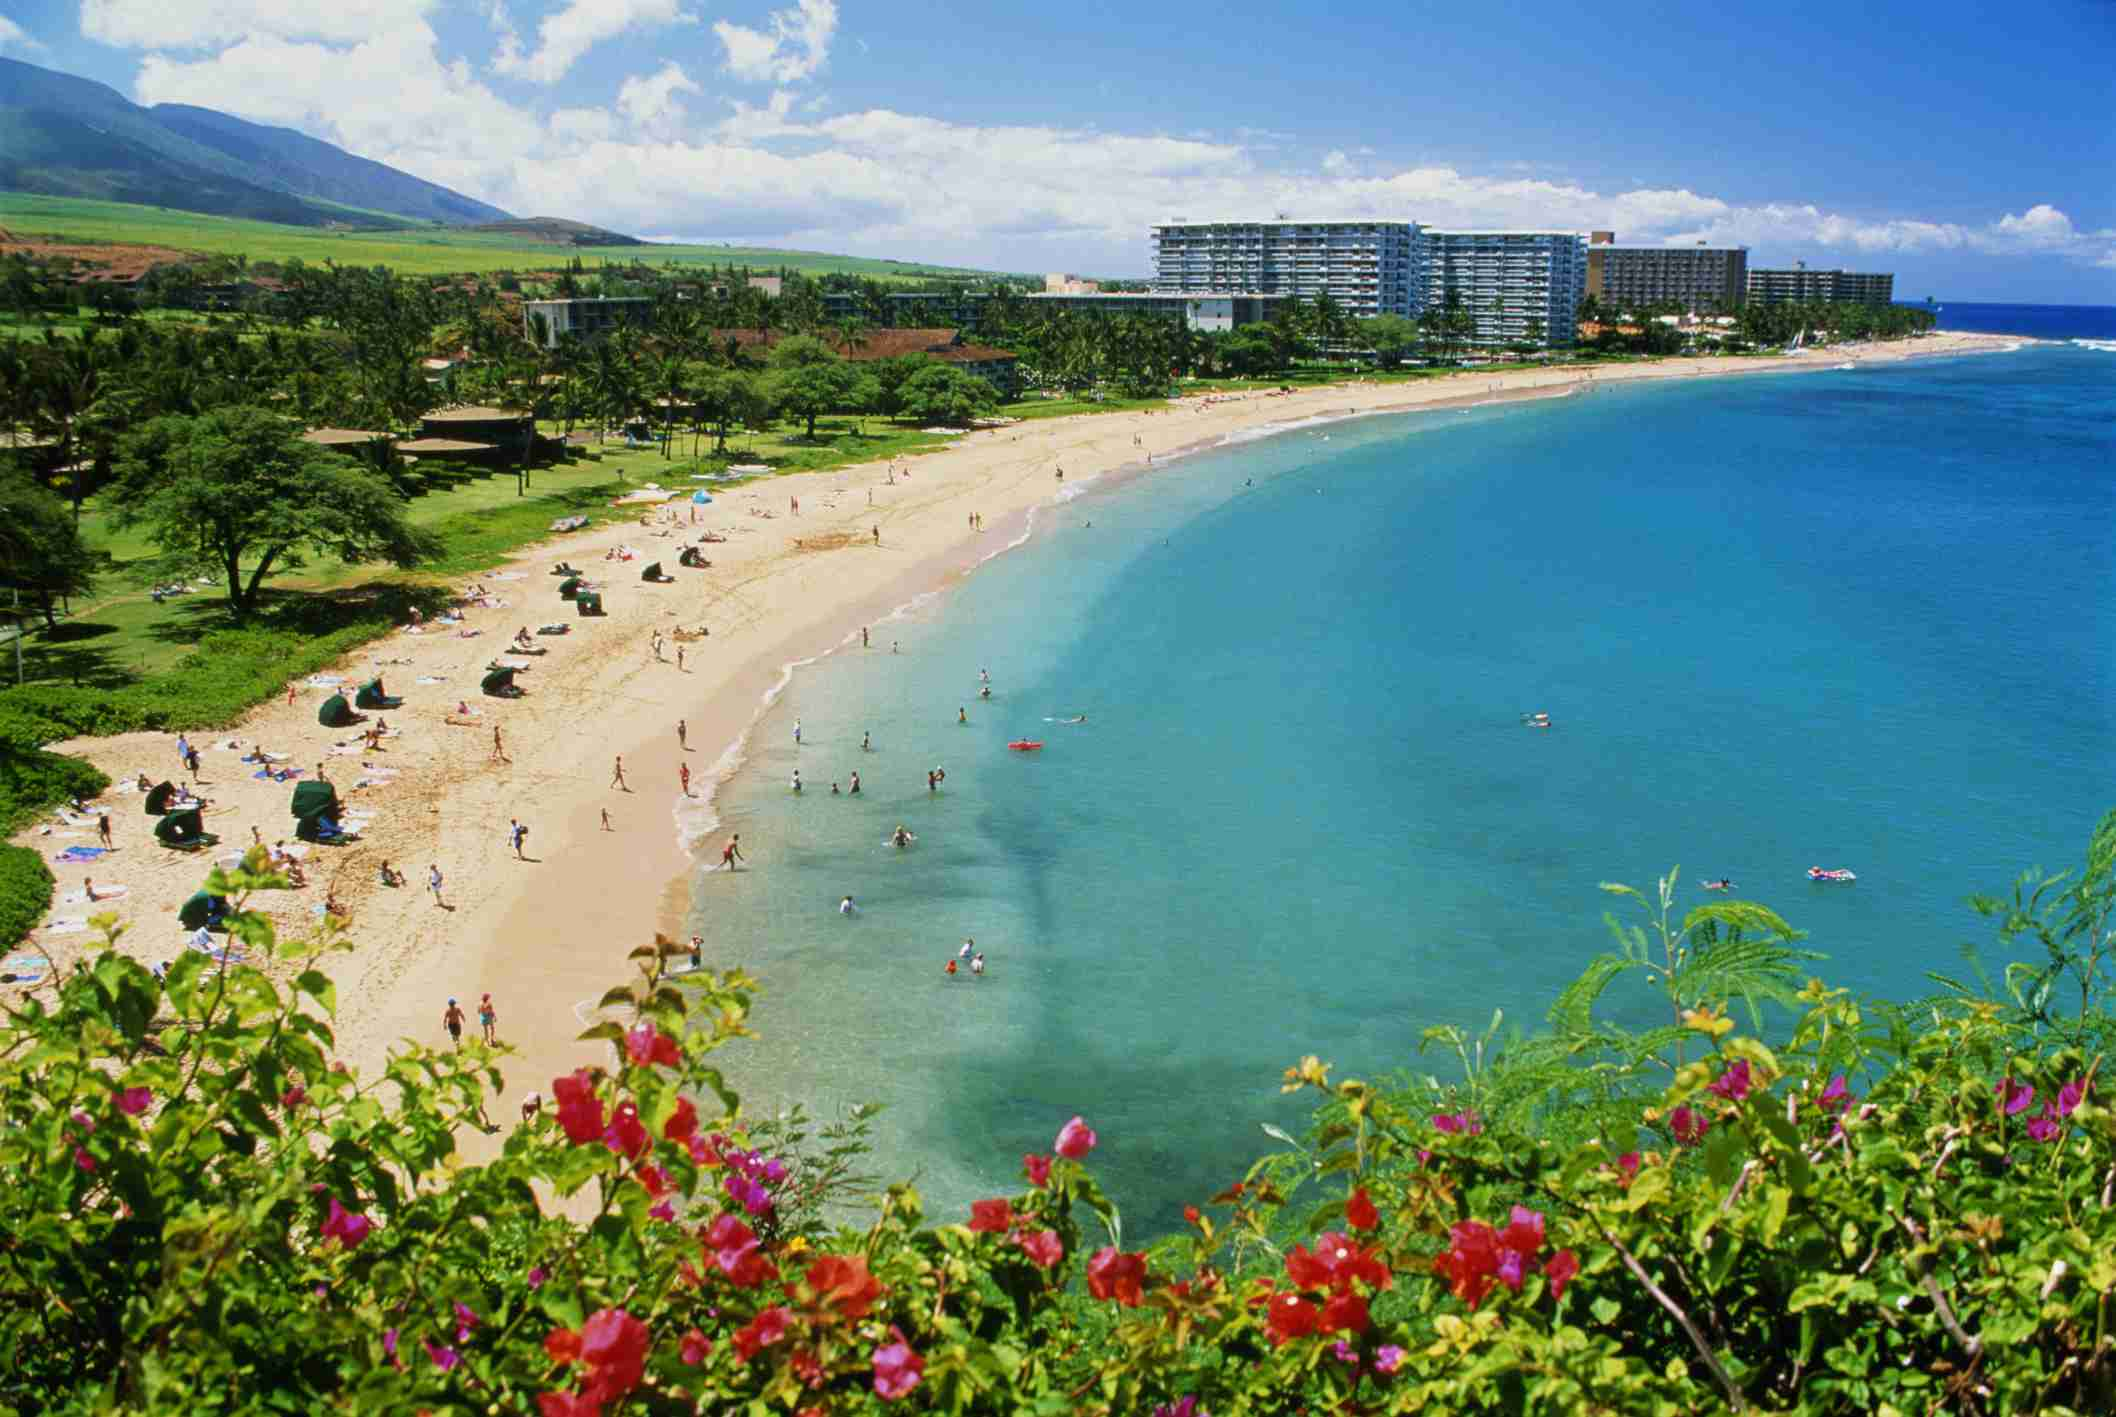 Ka'anapali Beach with hotels in the background.